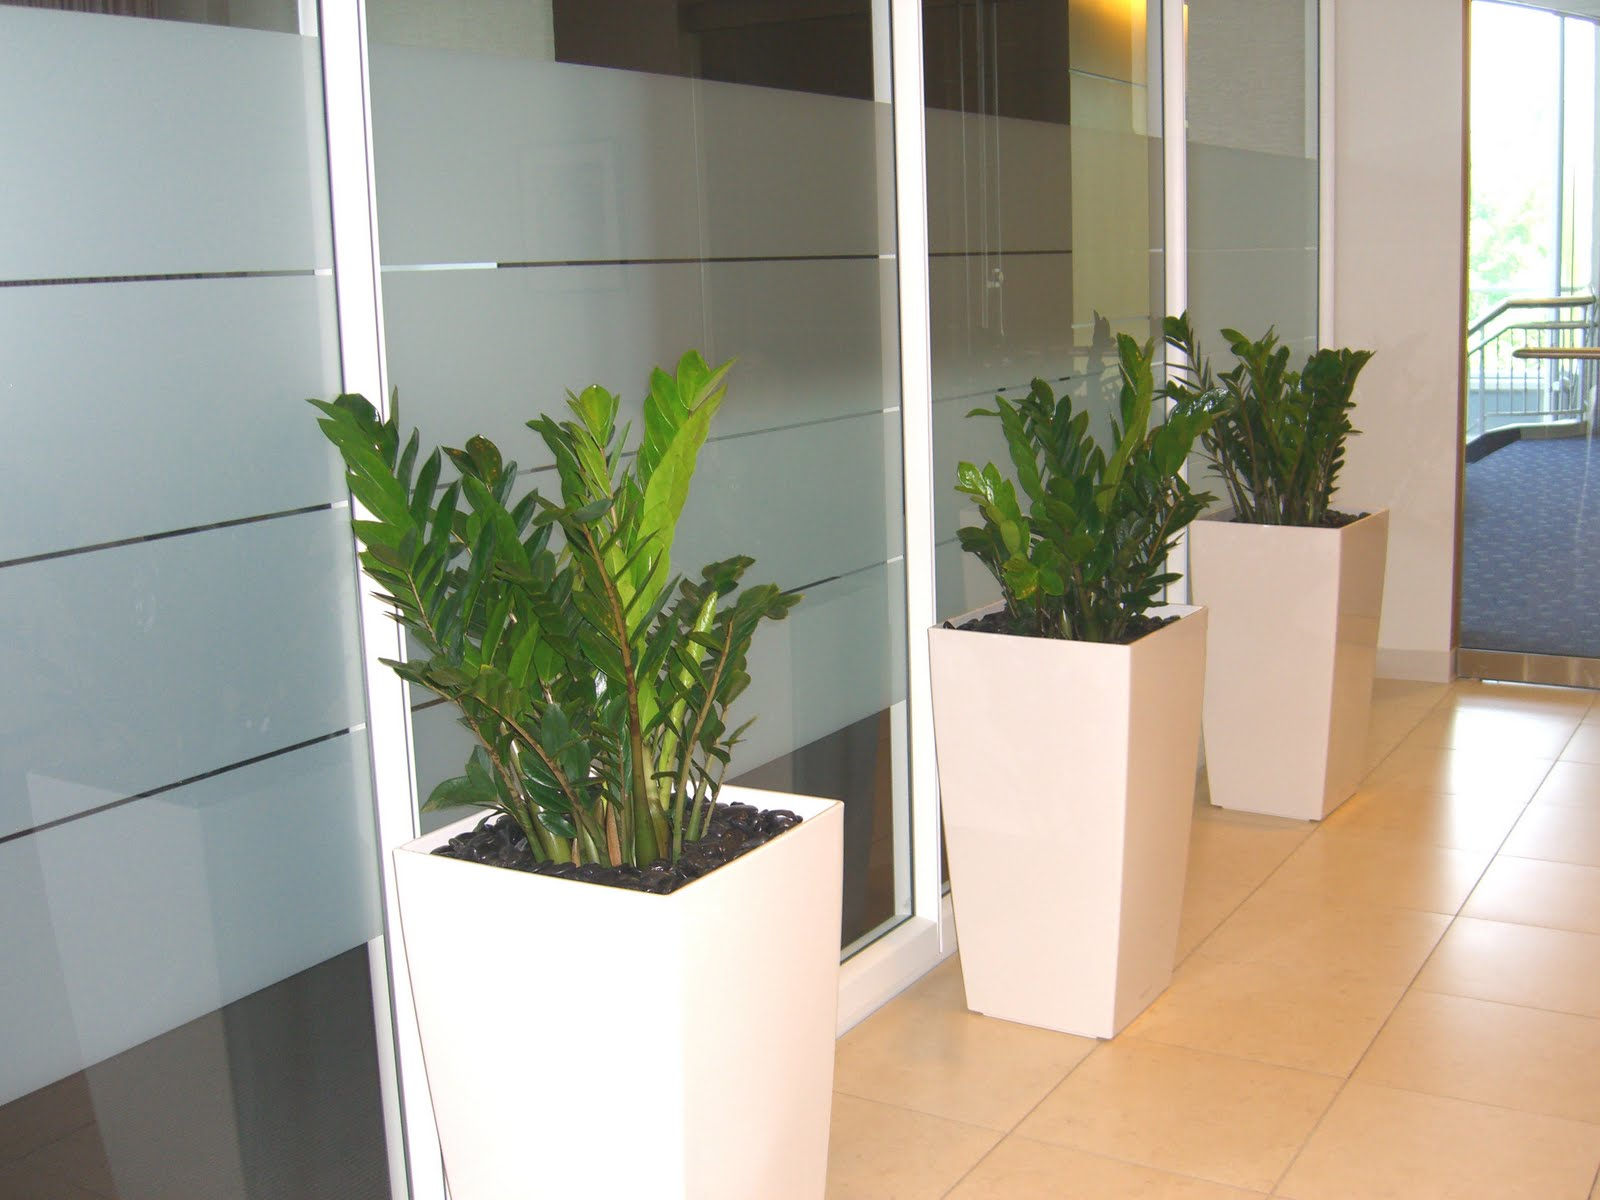 Creative juice what were they thinking thursday office plants - Cubicle planters ...